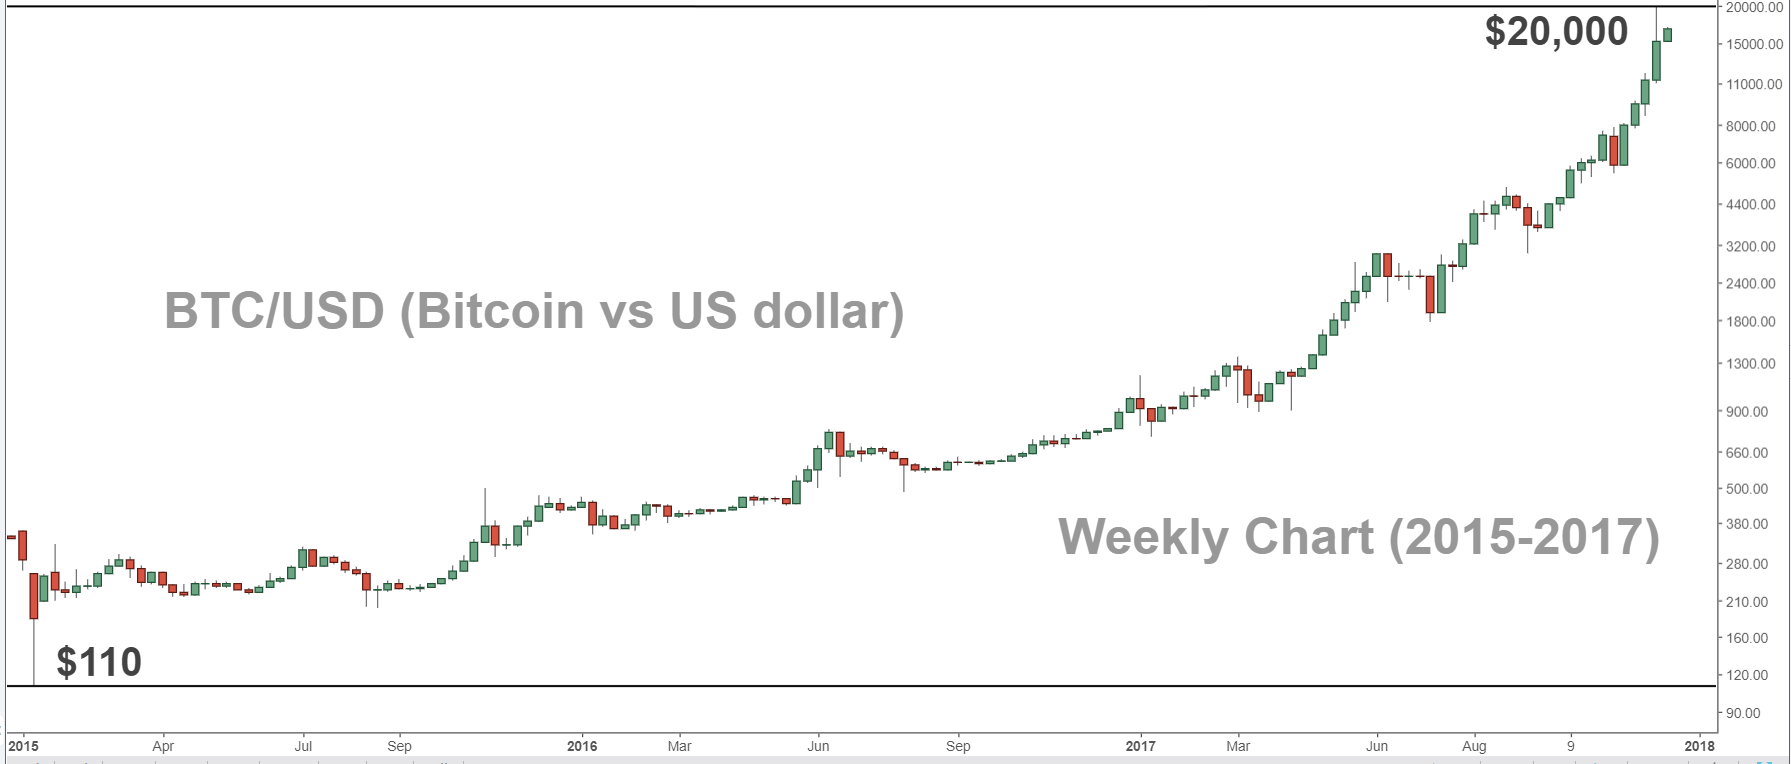 Bitcoin vs Dollar Weekly Chart